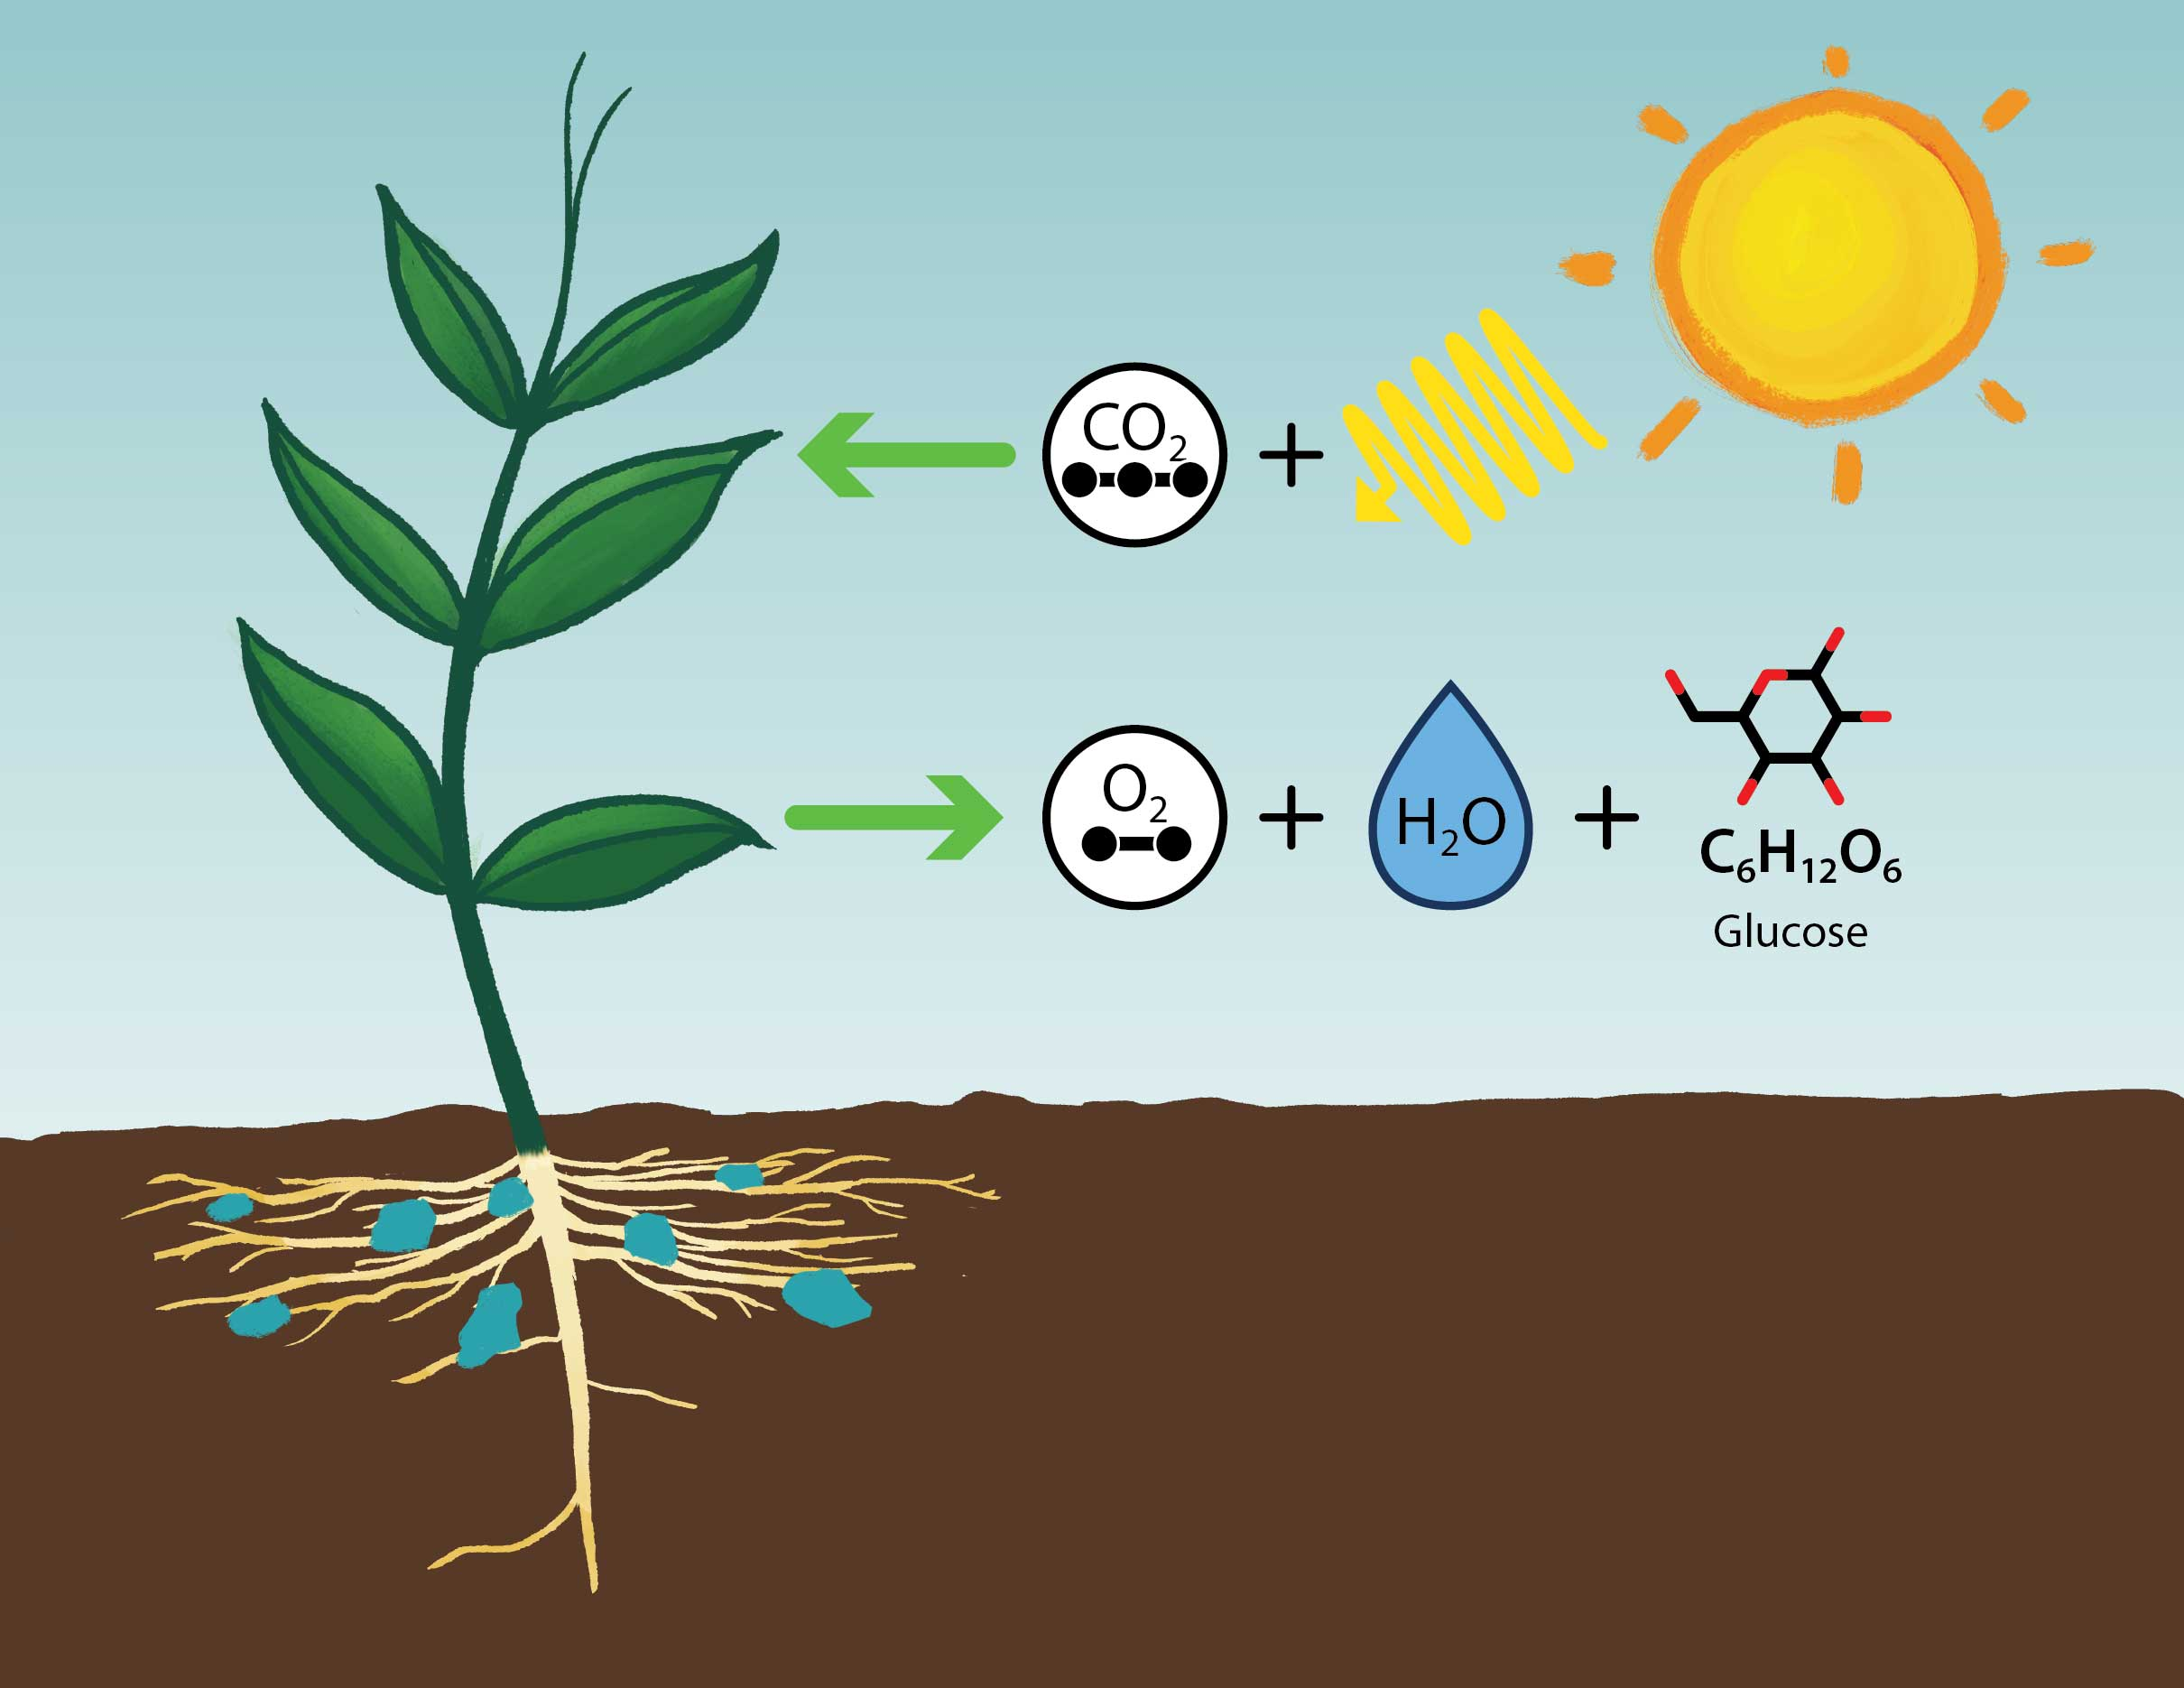 A simplified diagram showing the overall inputs – carbon dioxide, water, and sunlight, and products – oxygen and sugar (glucose), of photosynthesis.